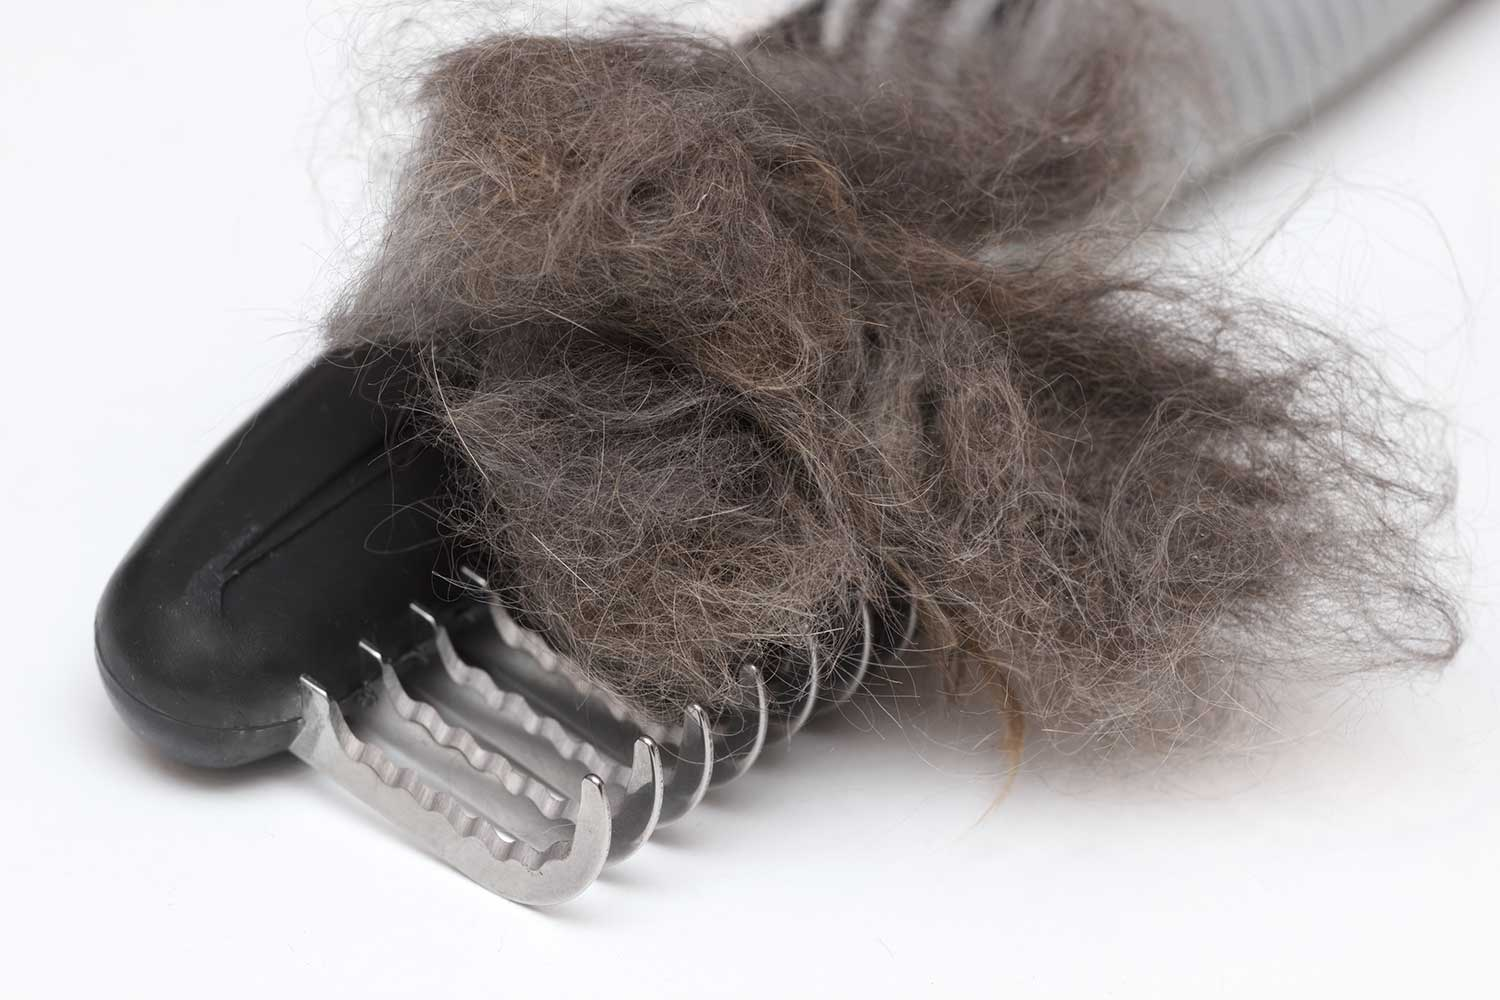 Matted wool trimmer tool for cat grooming